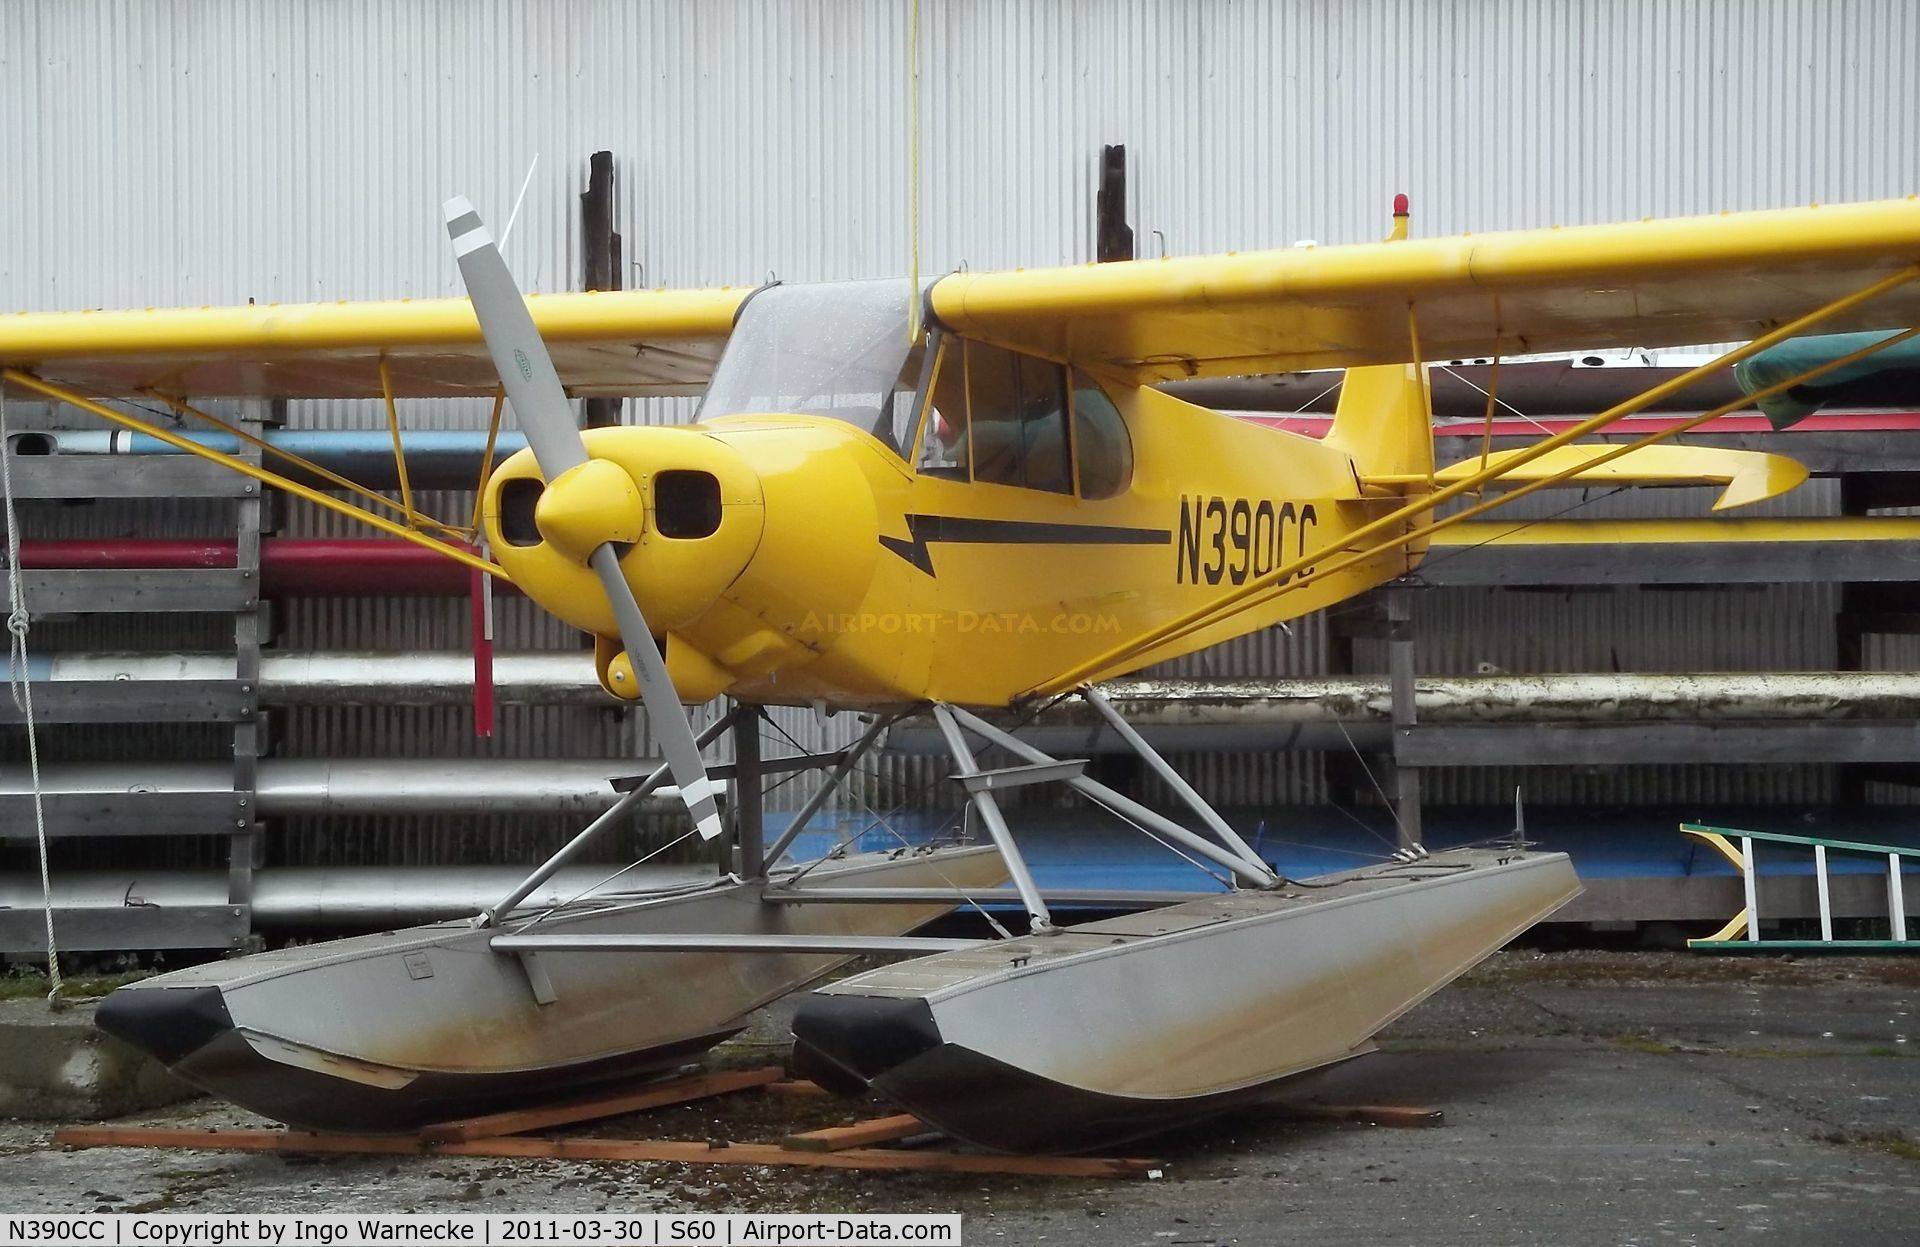 Pa 18 150 c n 9944cc piper cub crafters pa 18 150 top cub on floats